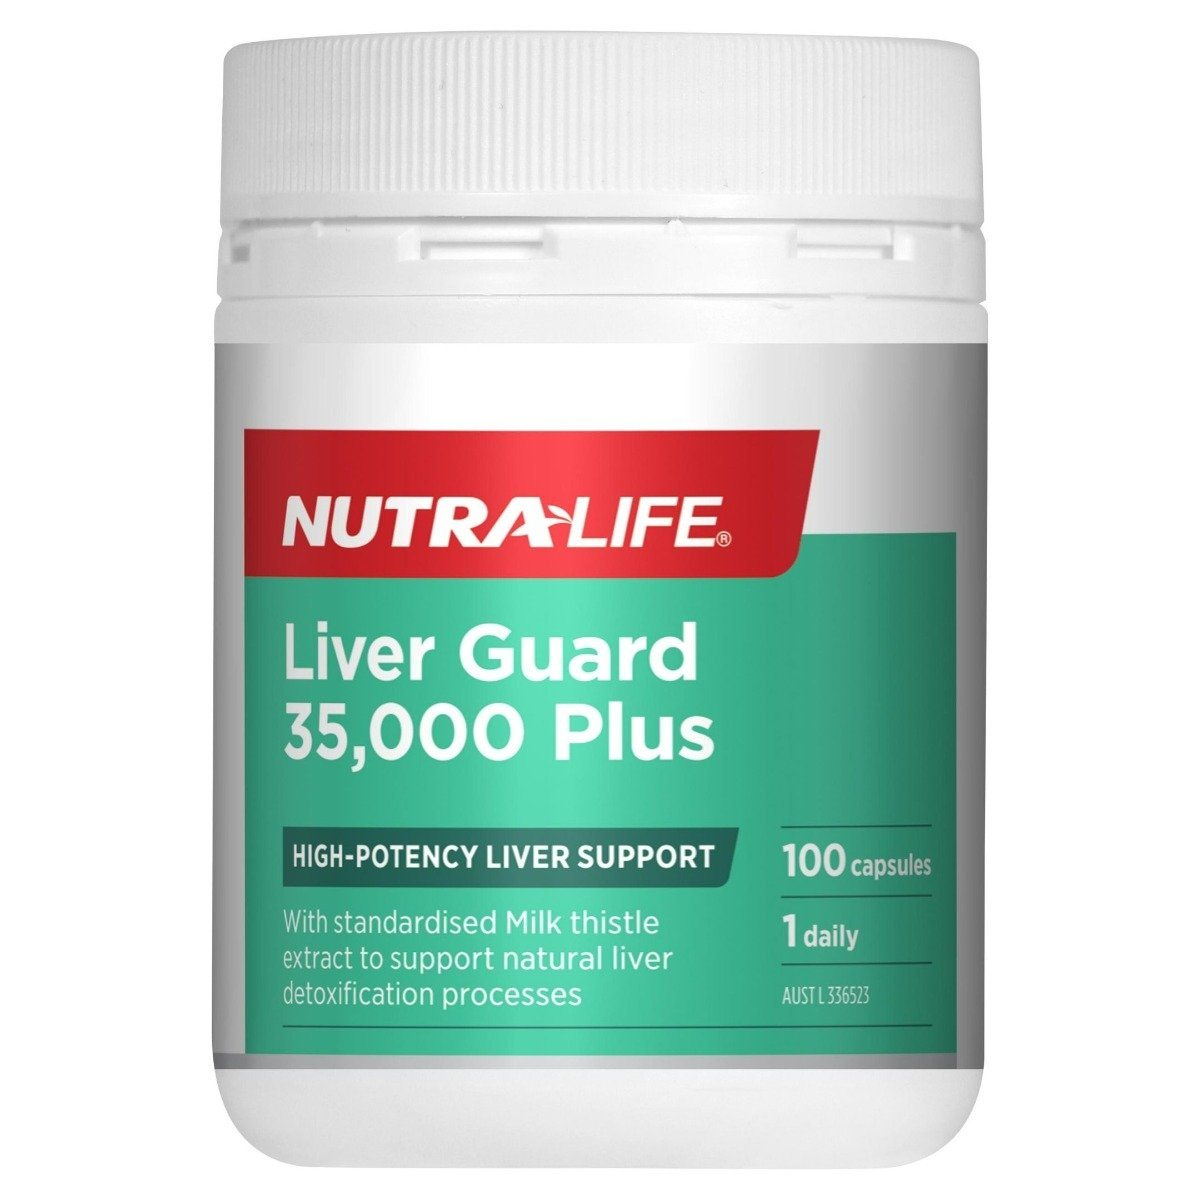 Nutralife Liver Guard 35,000 Plus 100C